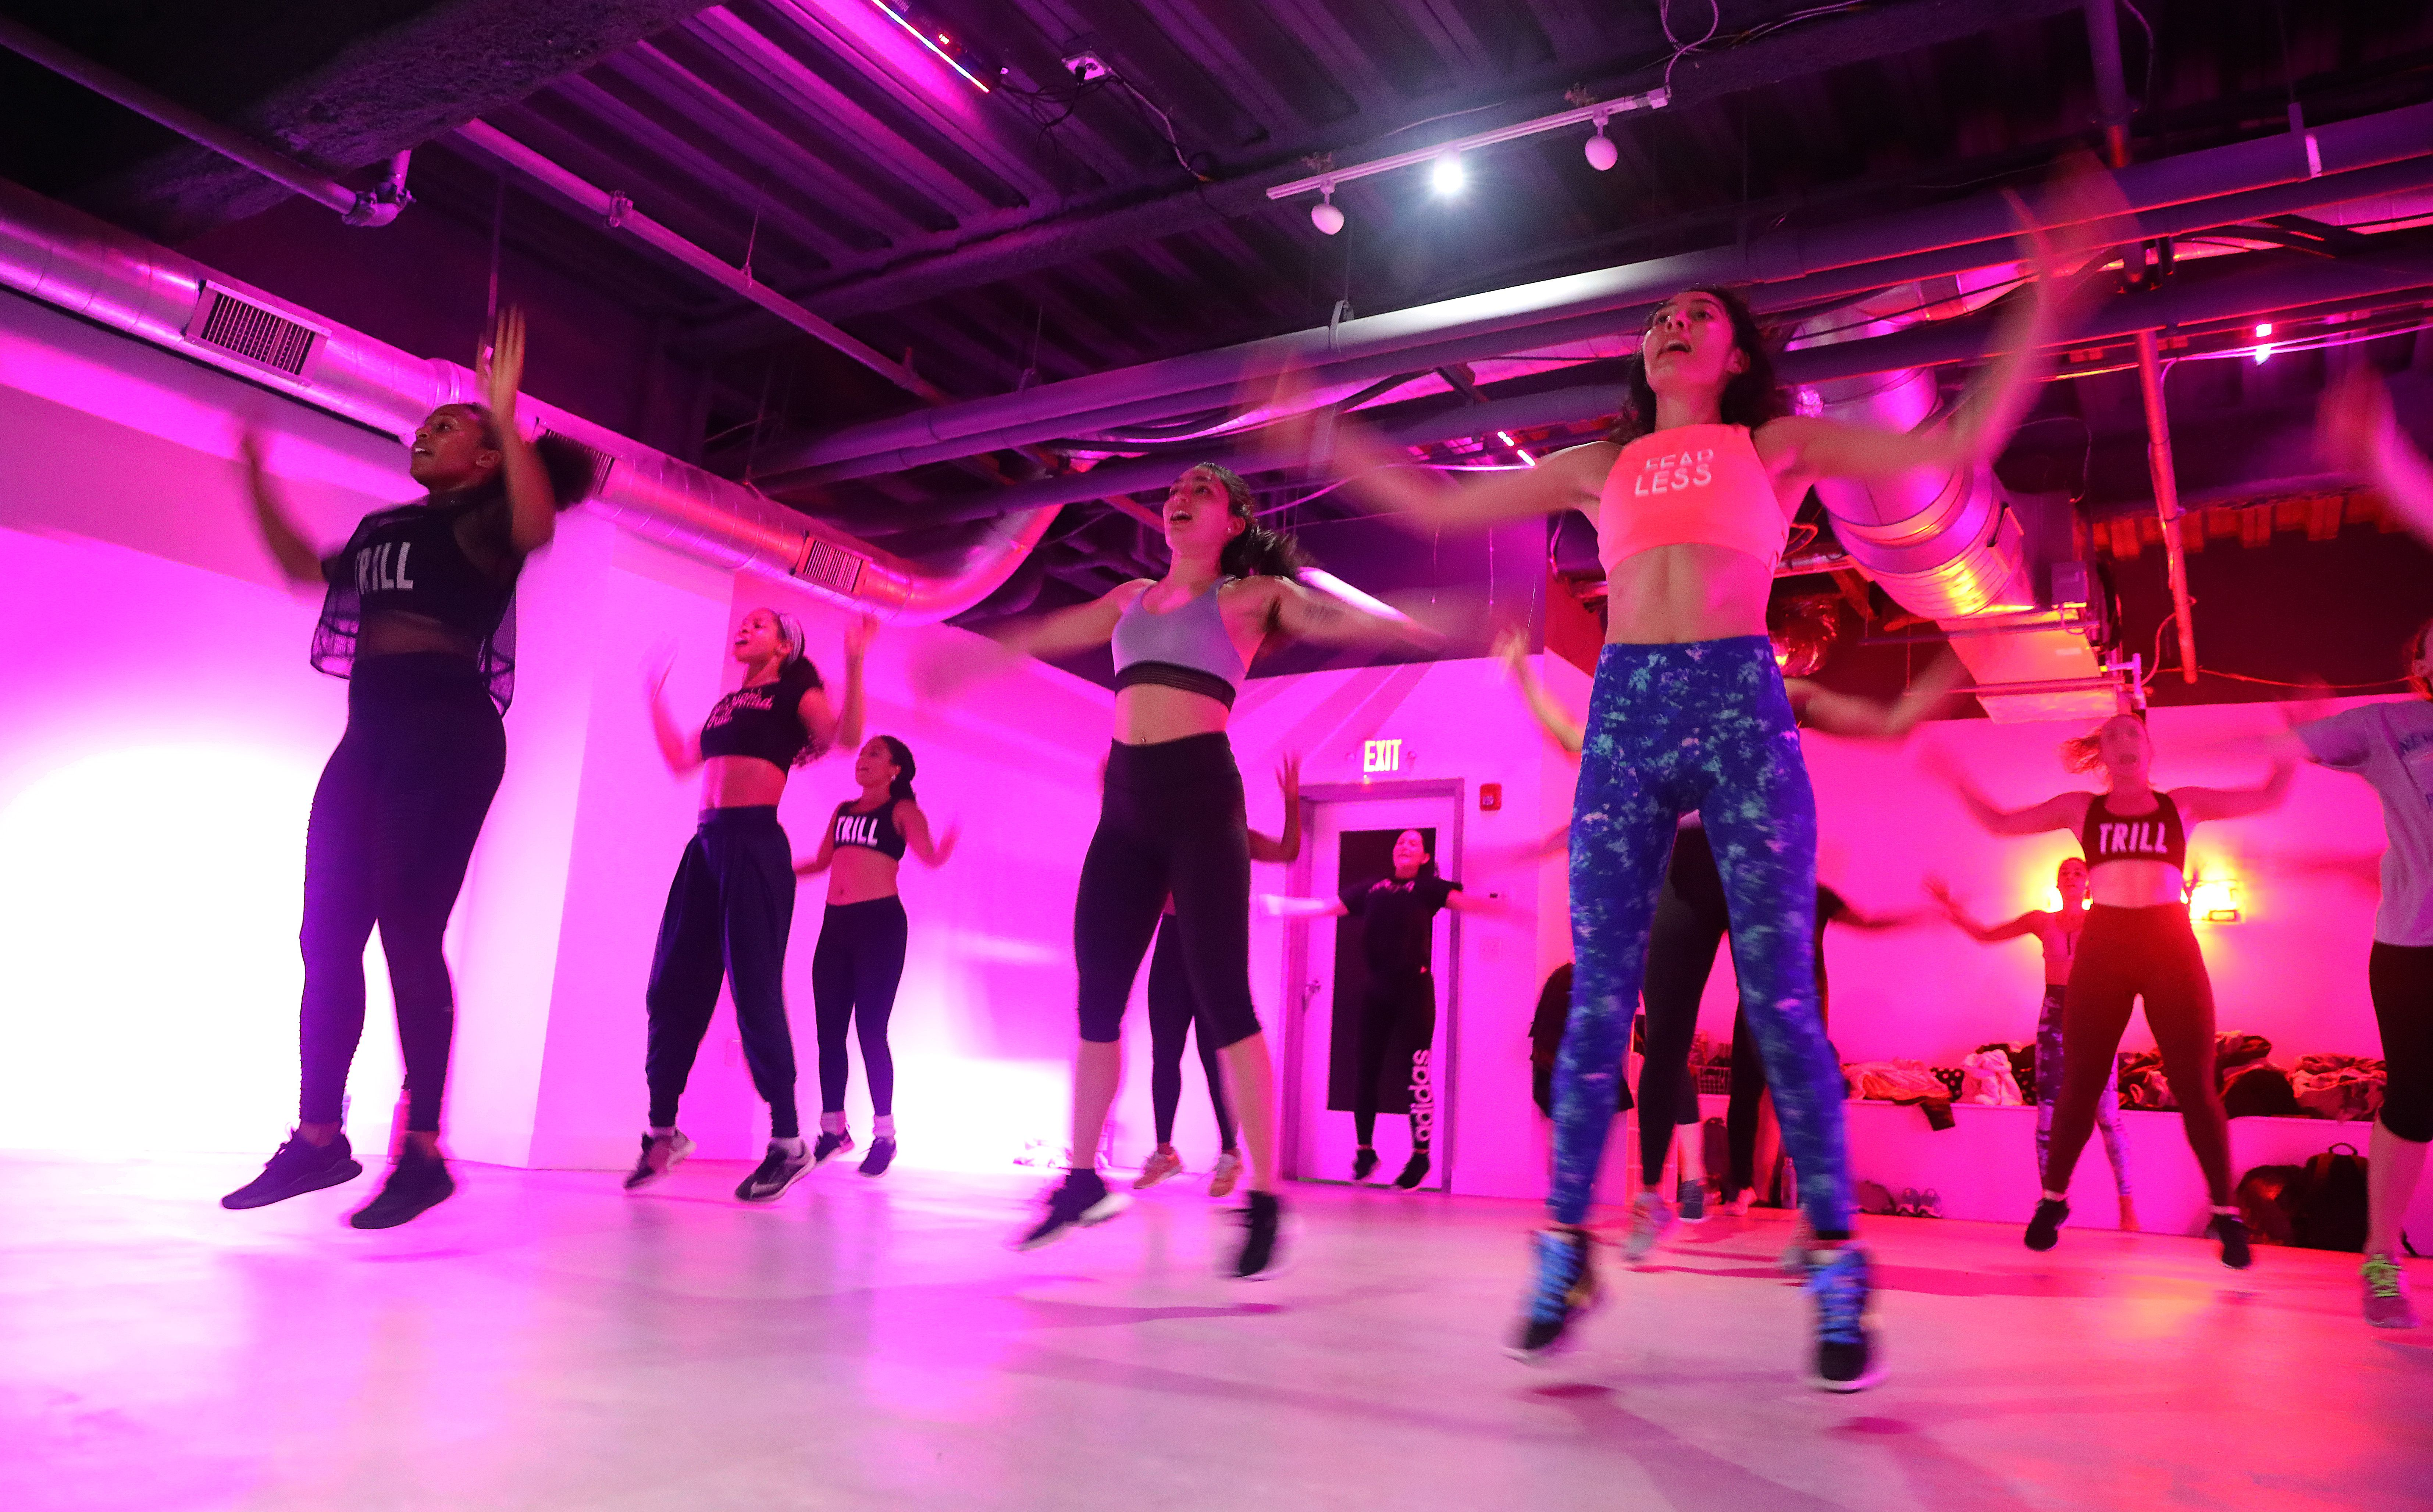 At Trillfit, workouts with hip-hop beats and no inhibitions - The